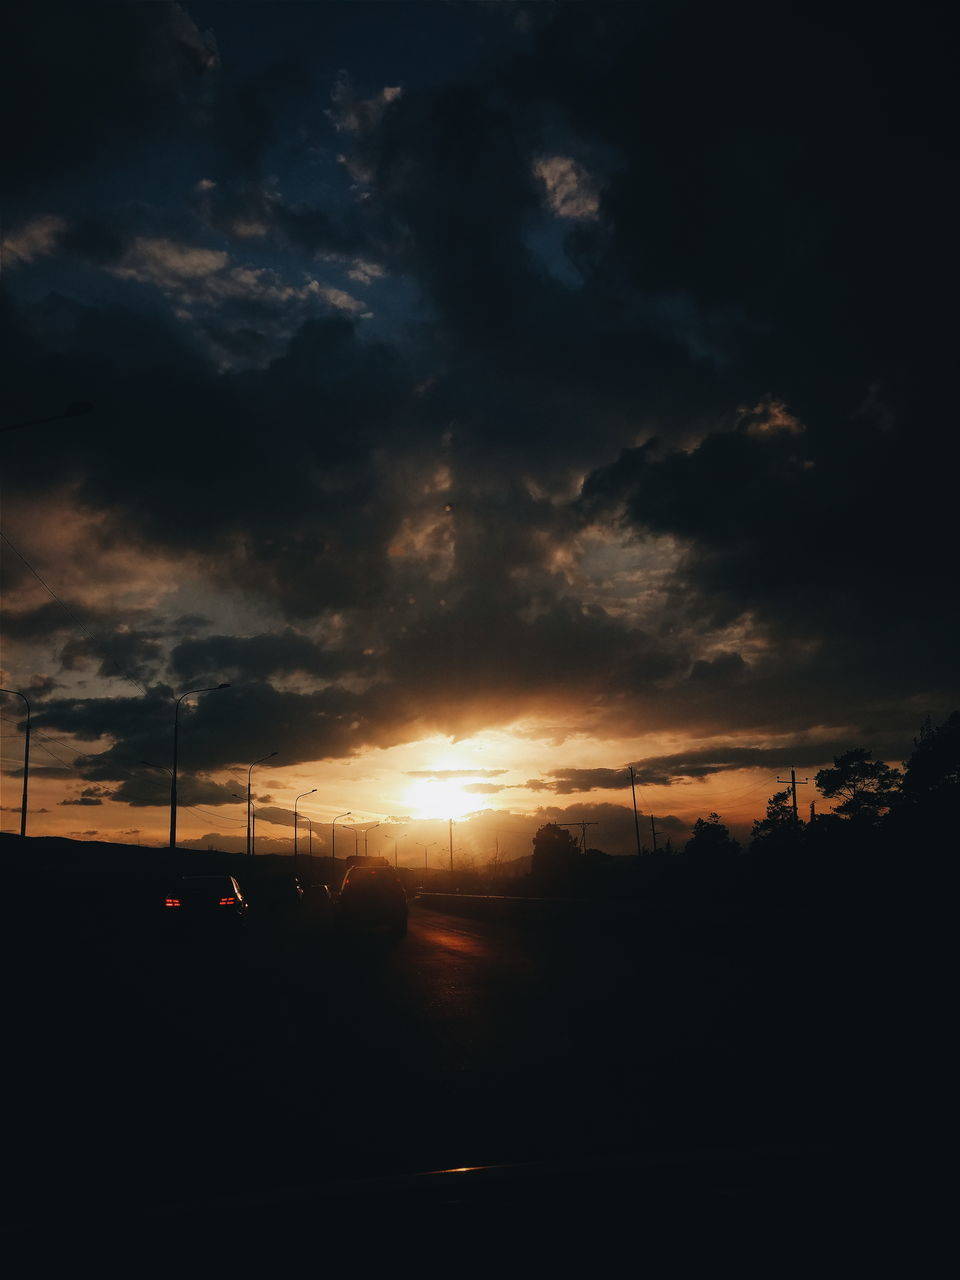 sunset, cloud - sky, sky, silhouette, car, transportation, no people, beauty in nature, nature, scenics, dramatic sky, tranquil scene, tranquility, mode of transport, land vehicle, sun, tree, outdoors, road, storm cloud, day